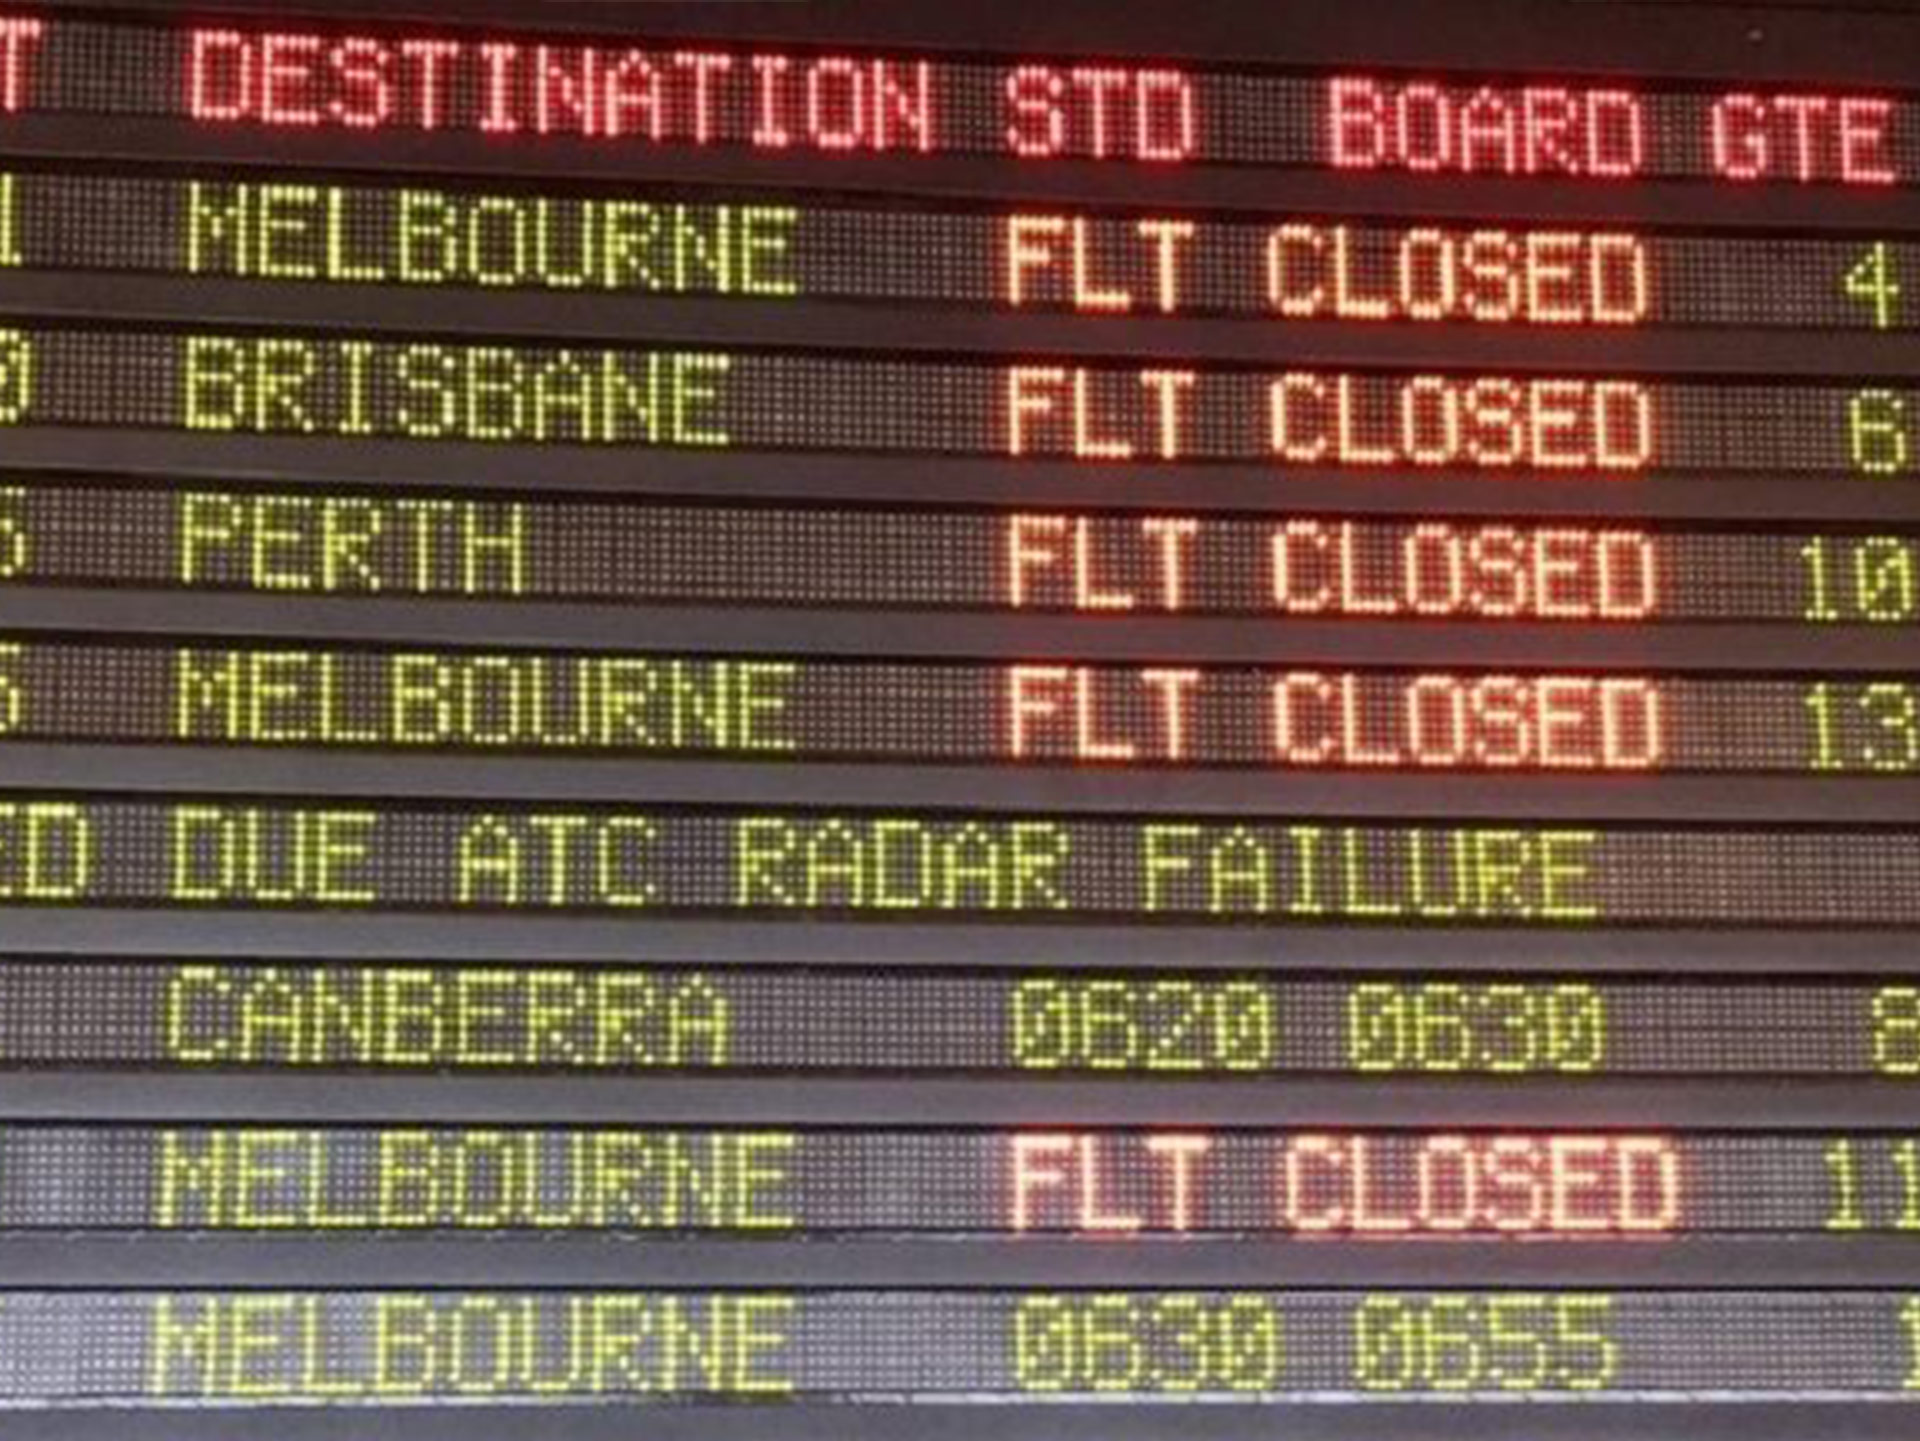 System failure triggers delays at Sydney airport